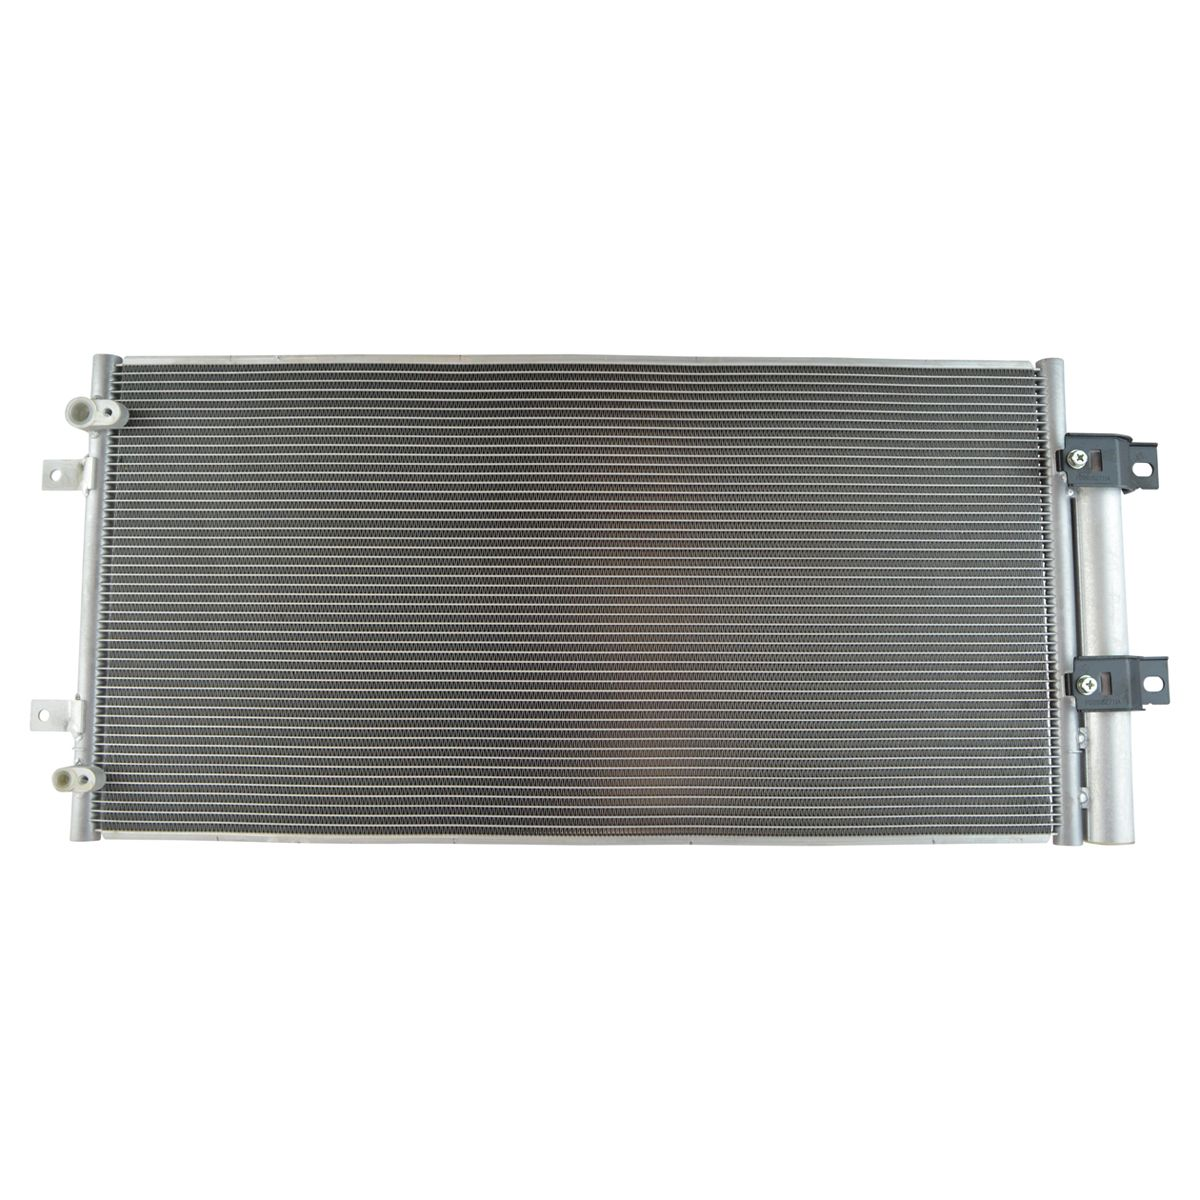 Radiator For 2012-14 Ford Edge 2.0L Turbo